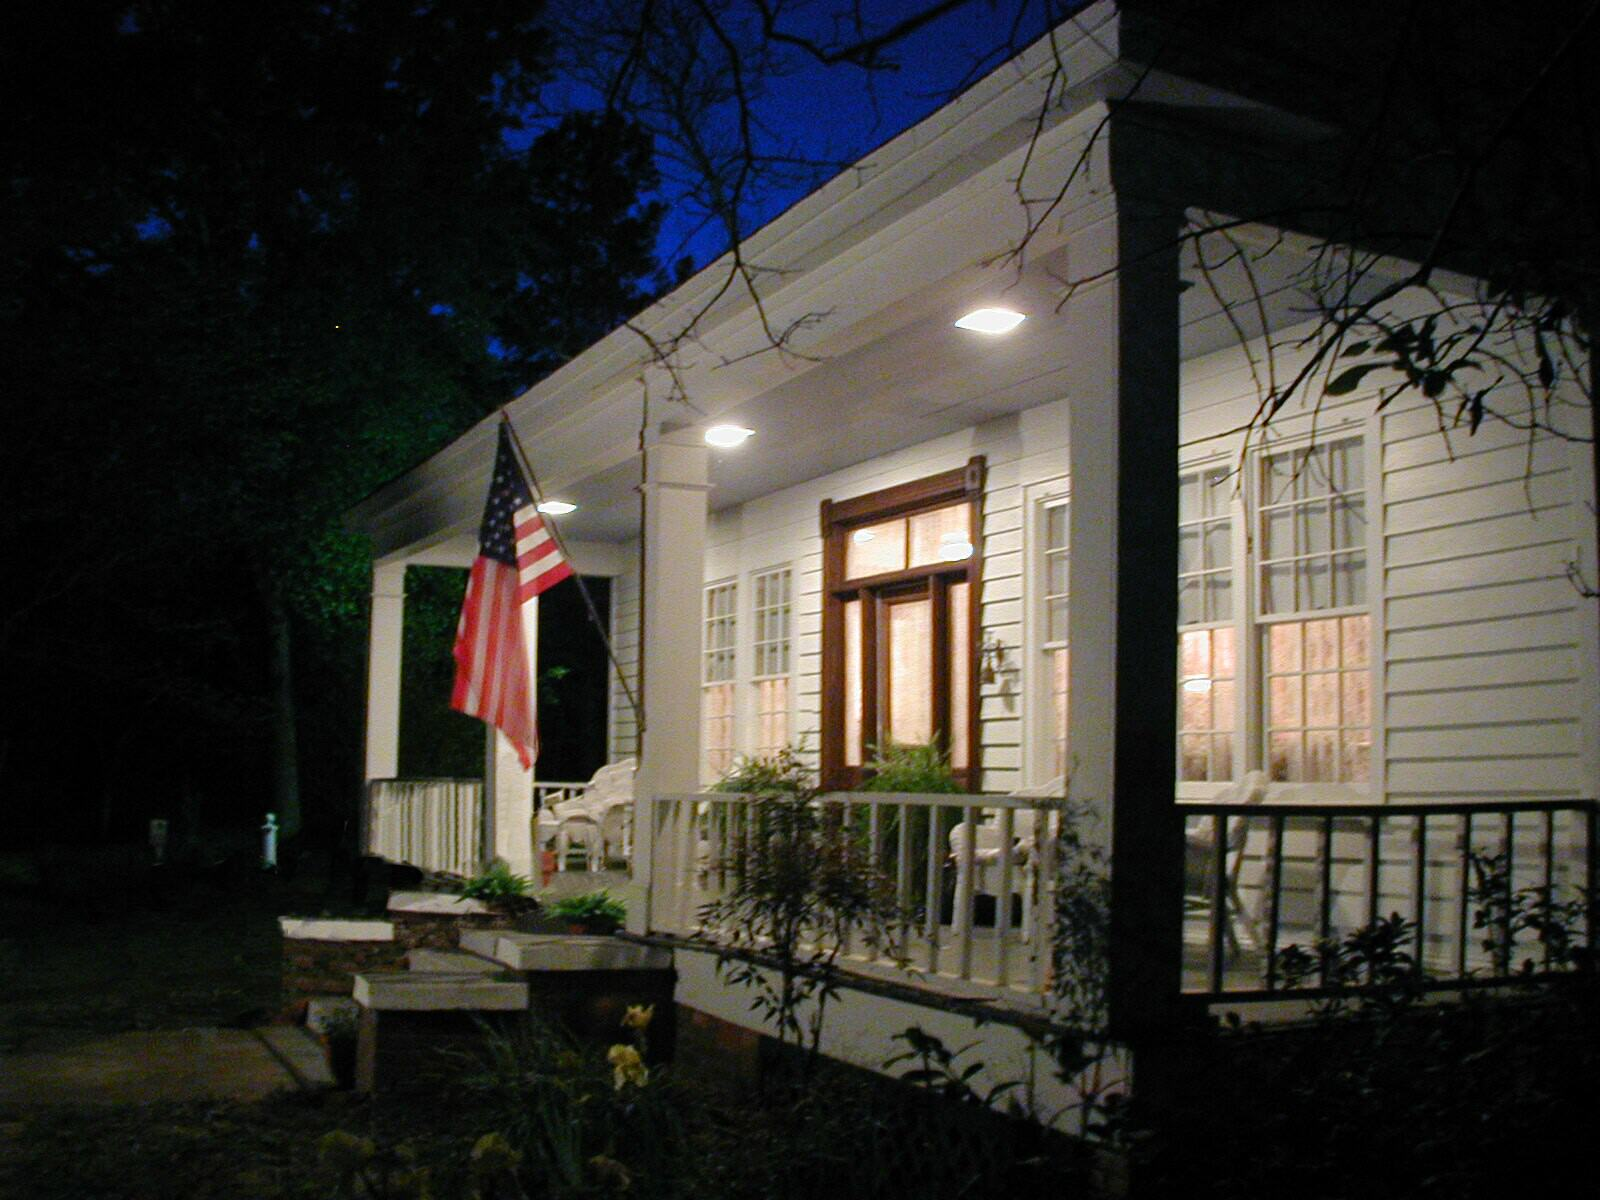 This historic home was built in 1861.